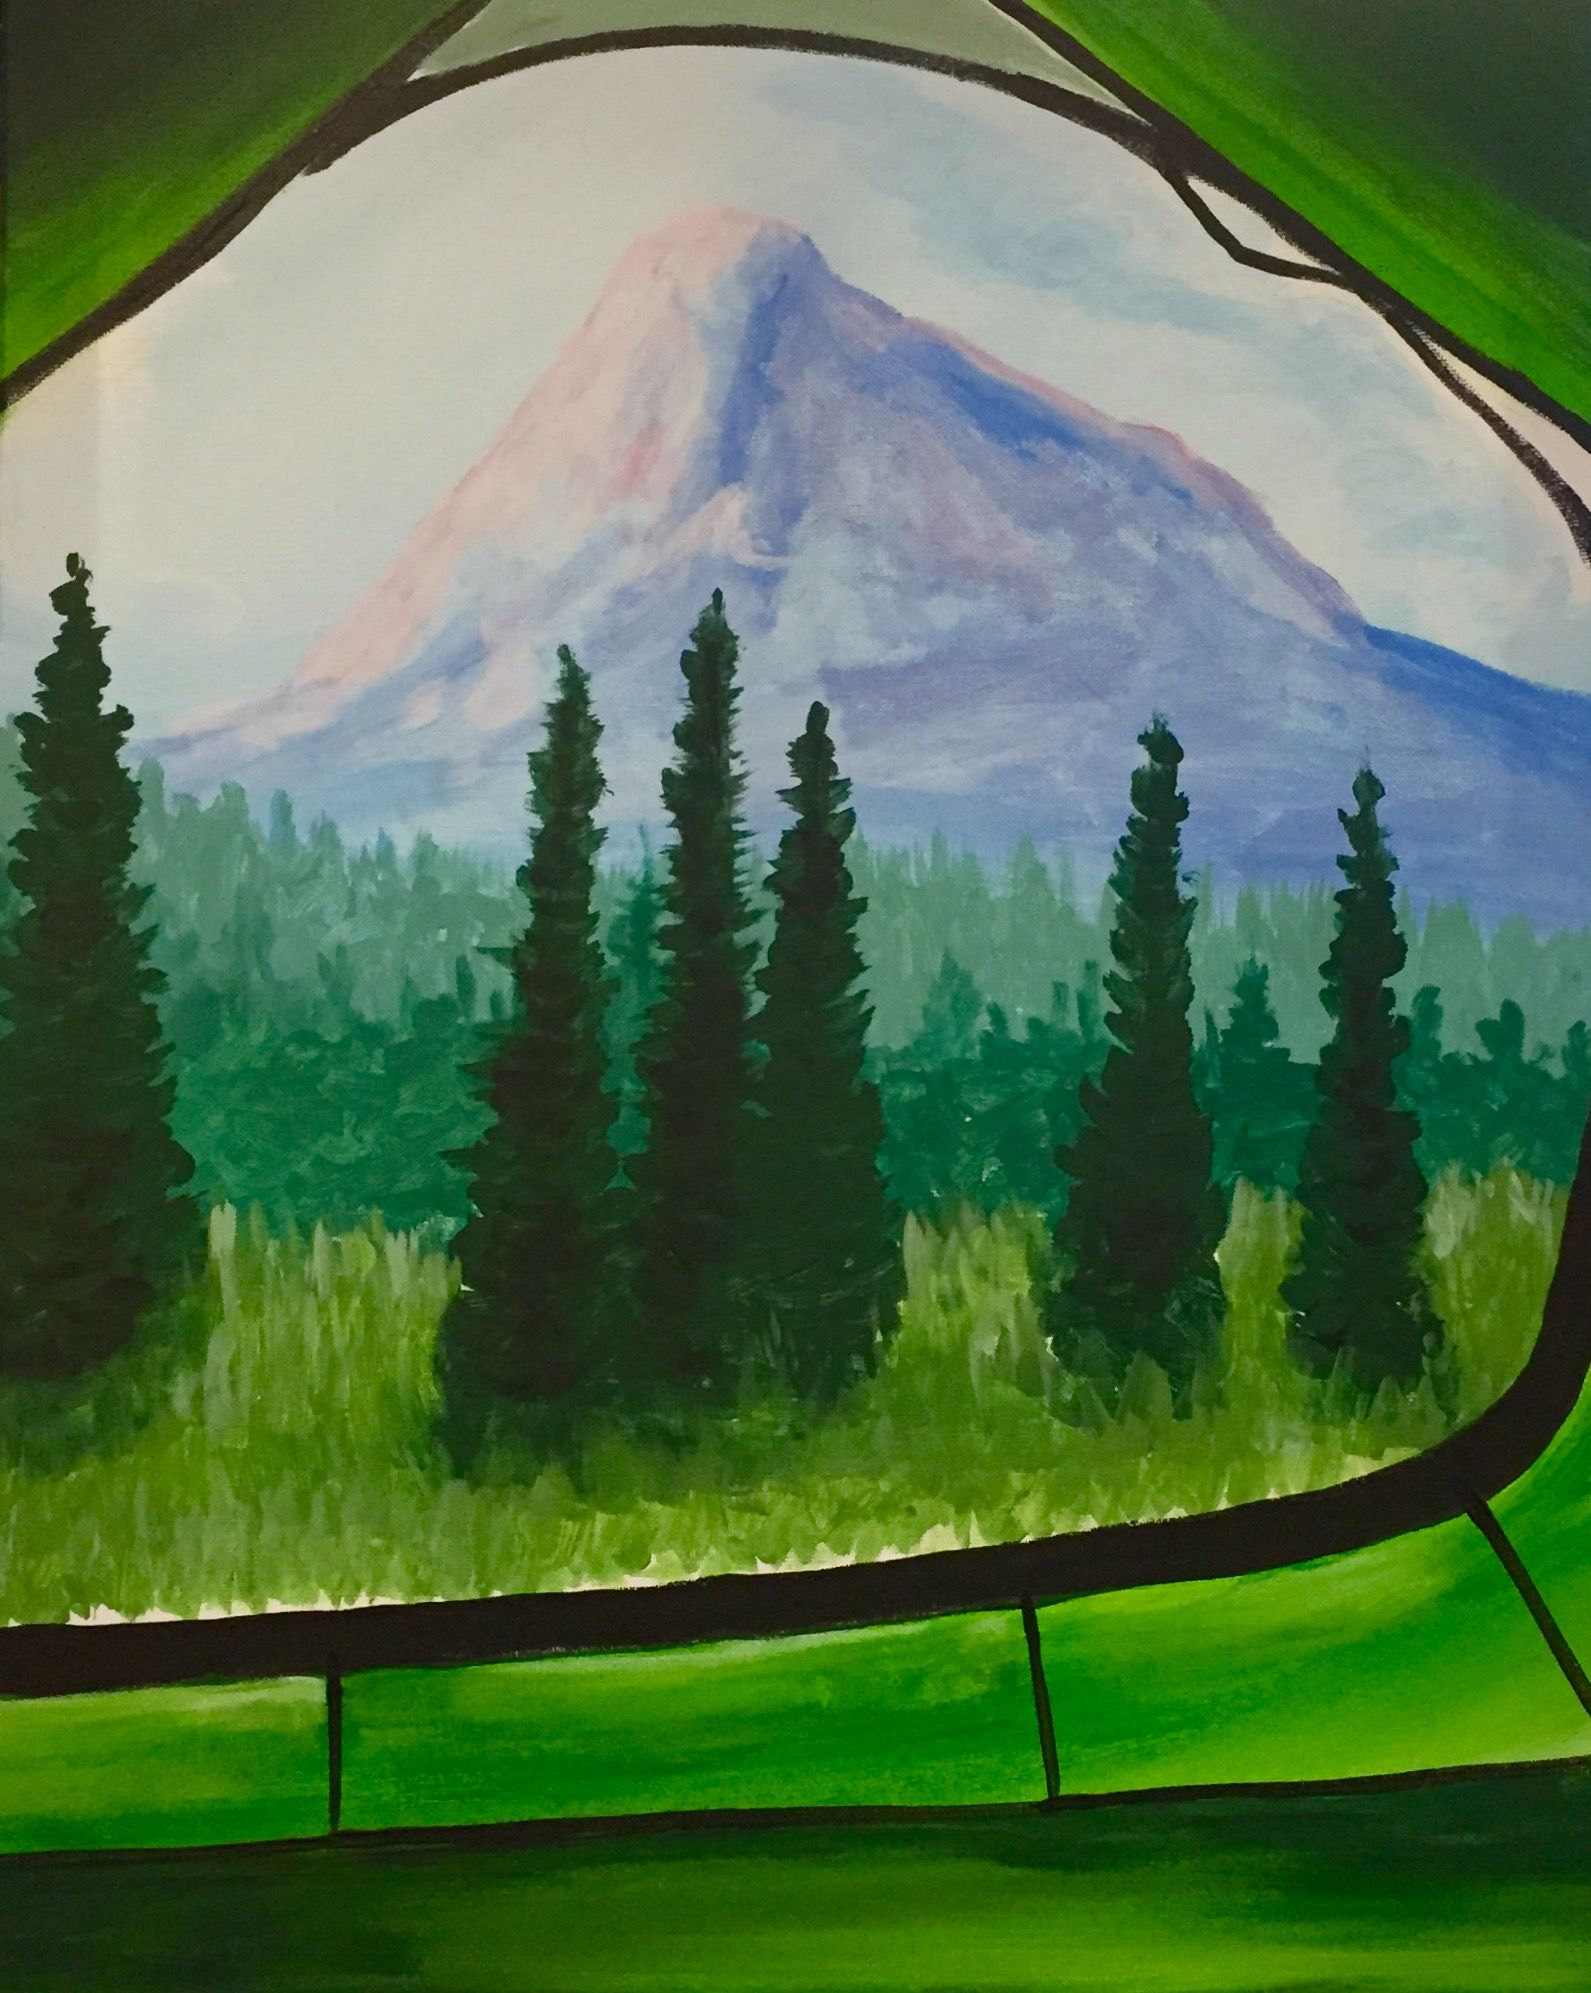 Image Result For Tent Paint N Sip Painting Art Projects Art